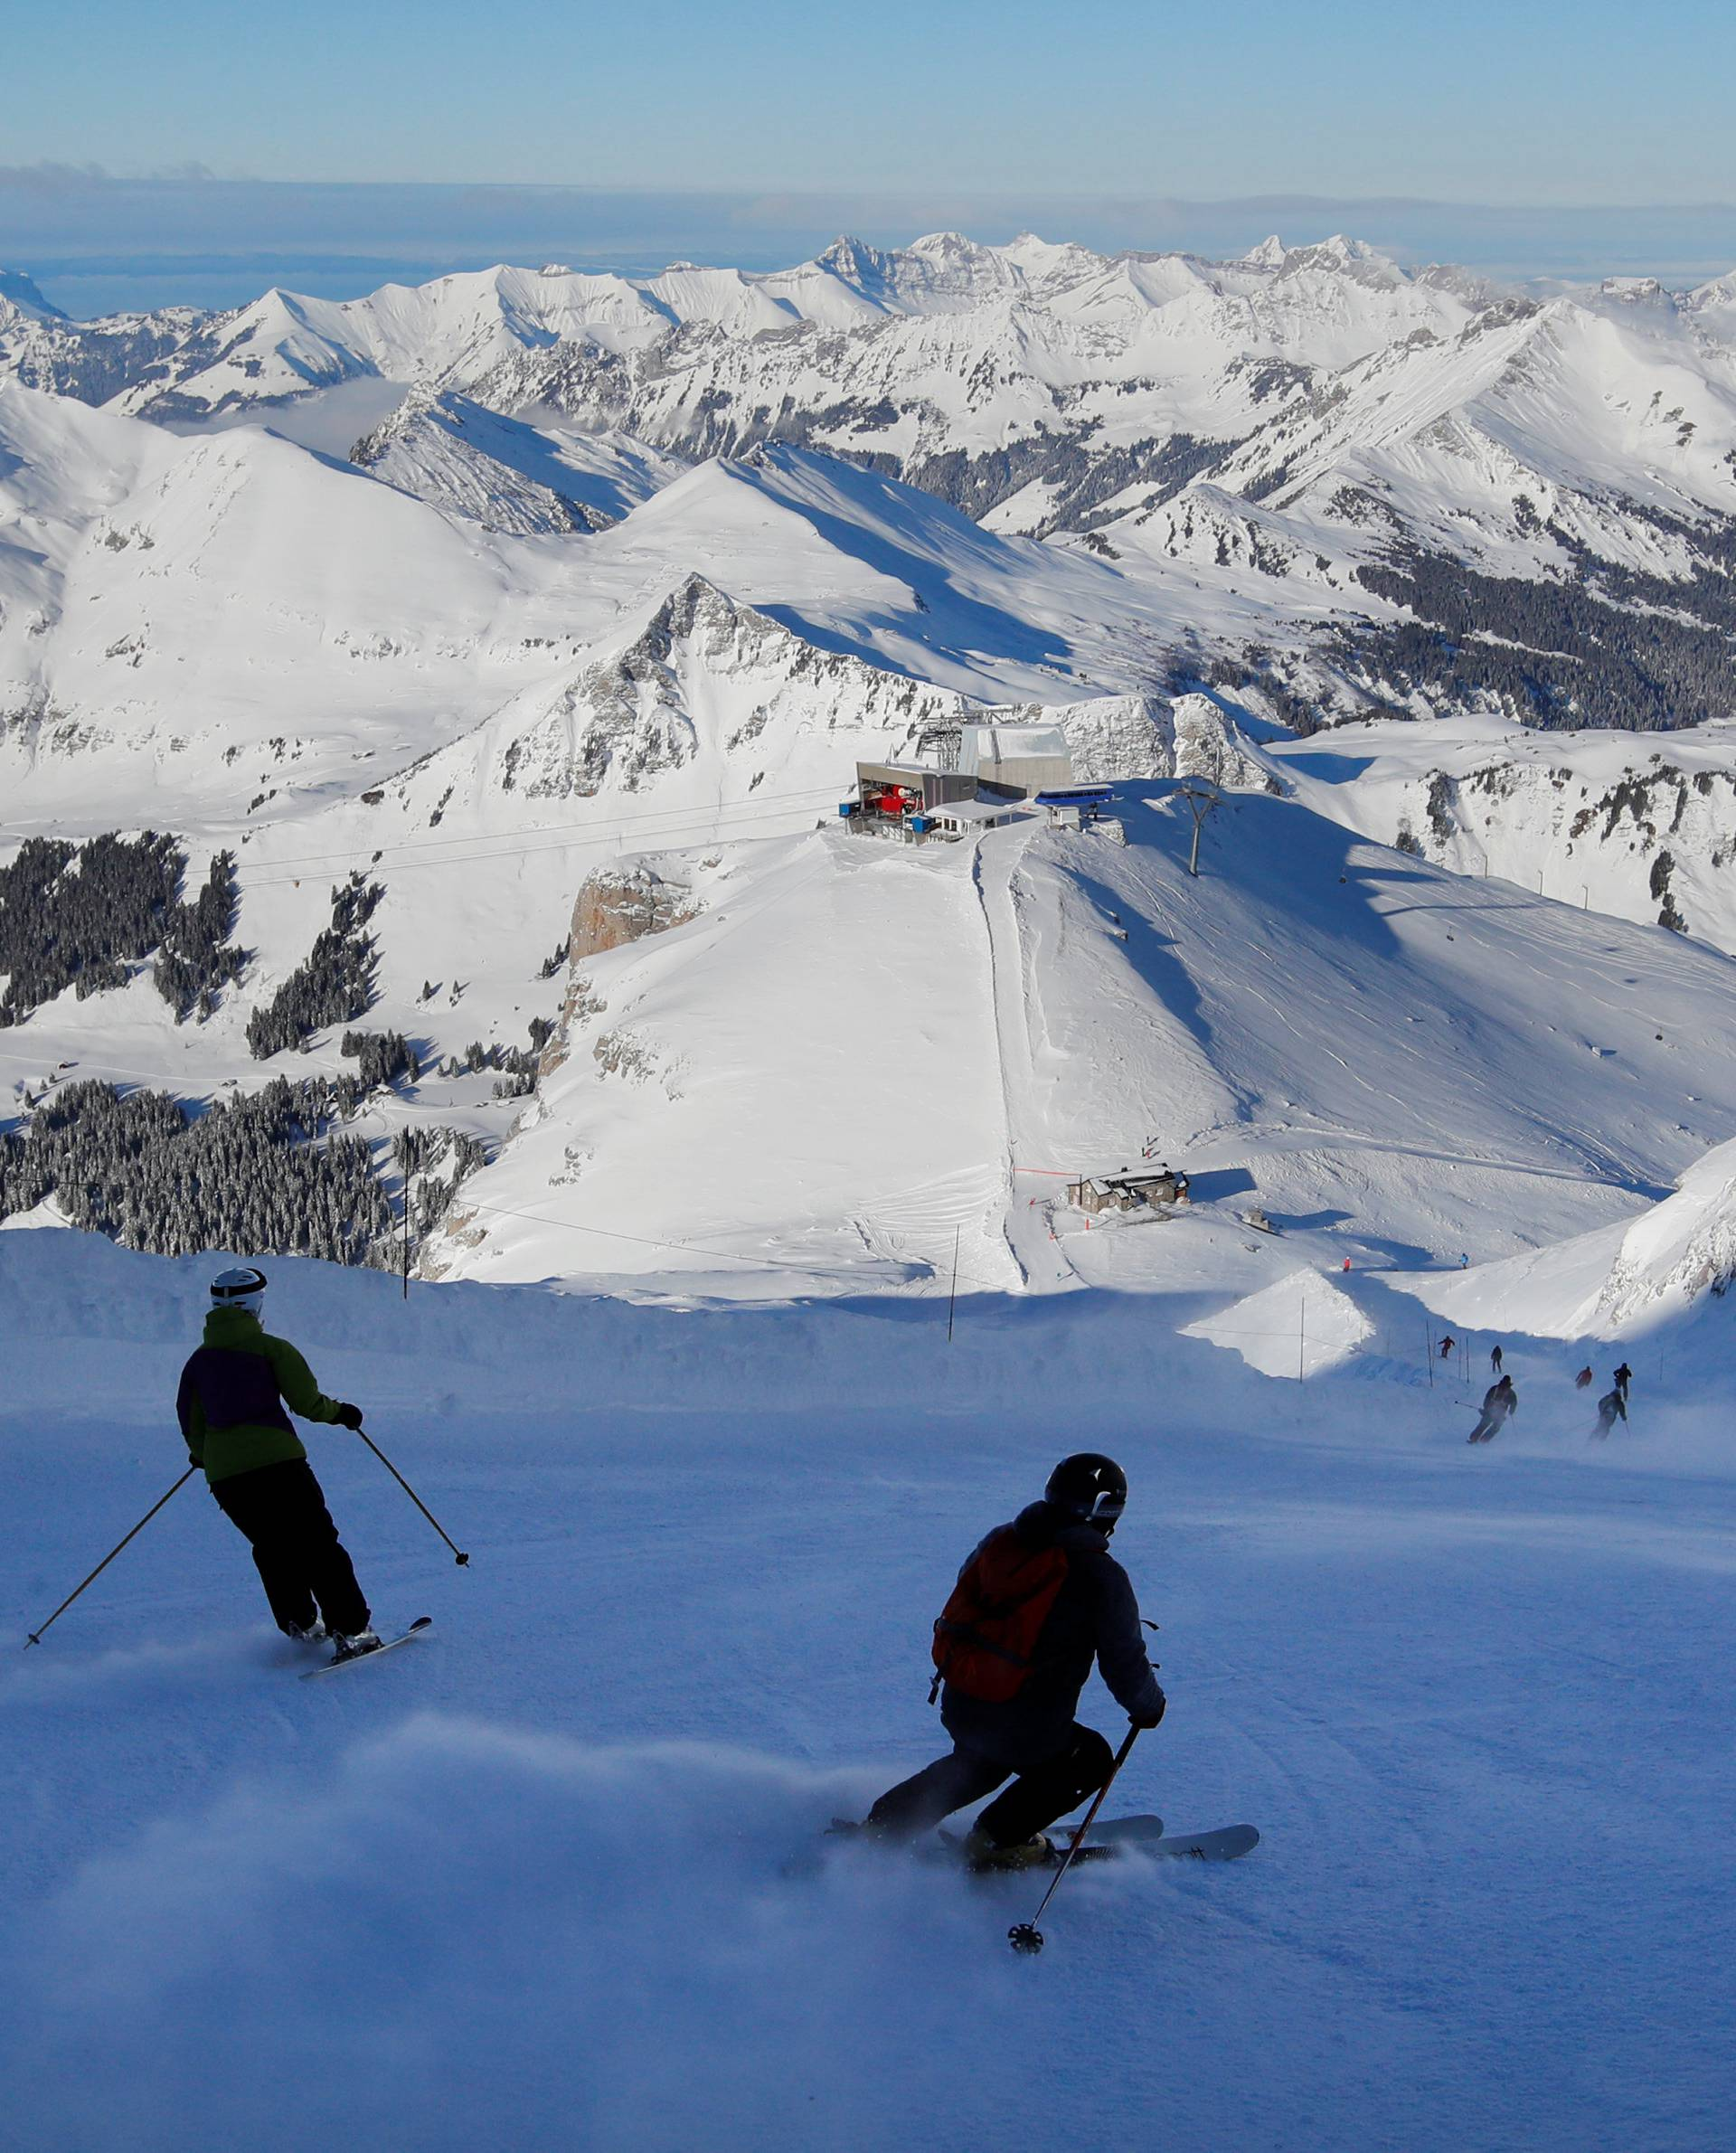 Guests speed down the Red Run during its official opening at Glacier 3000 in Les Diablerets